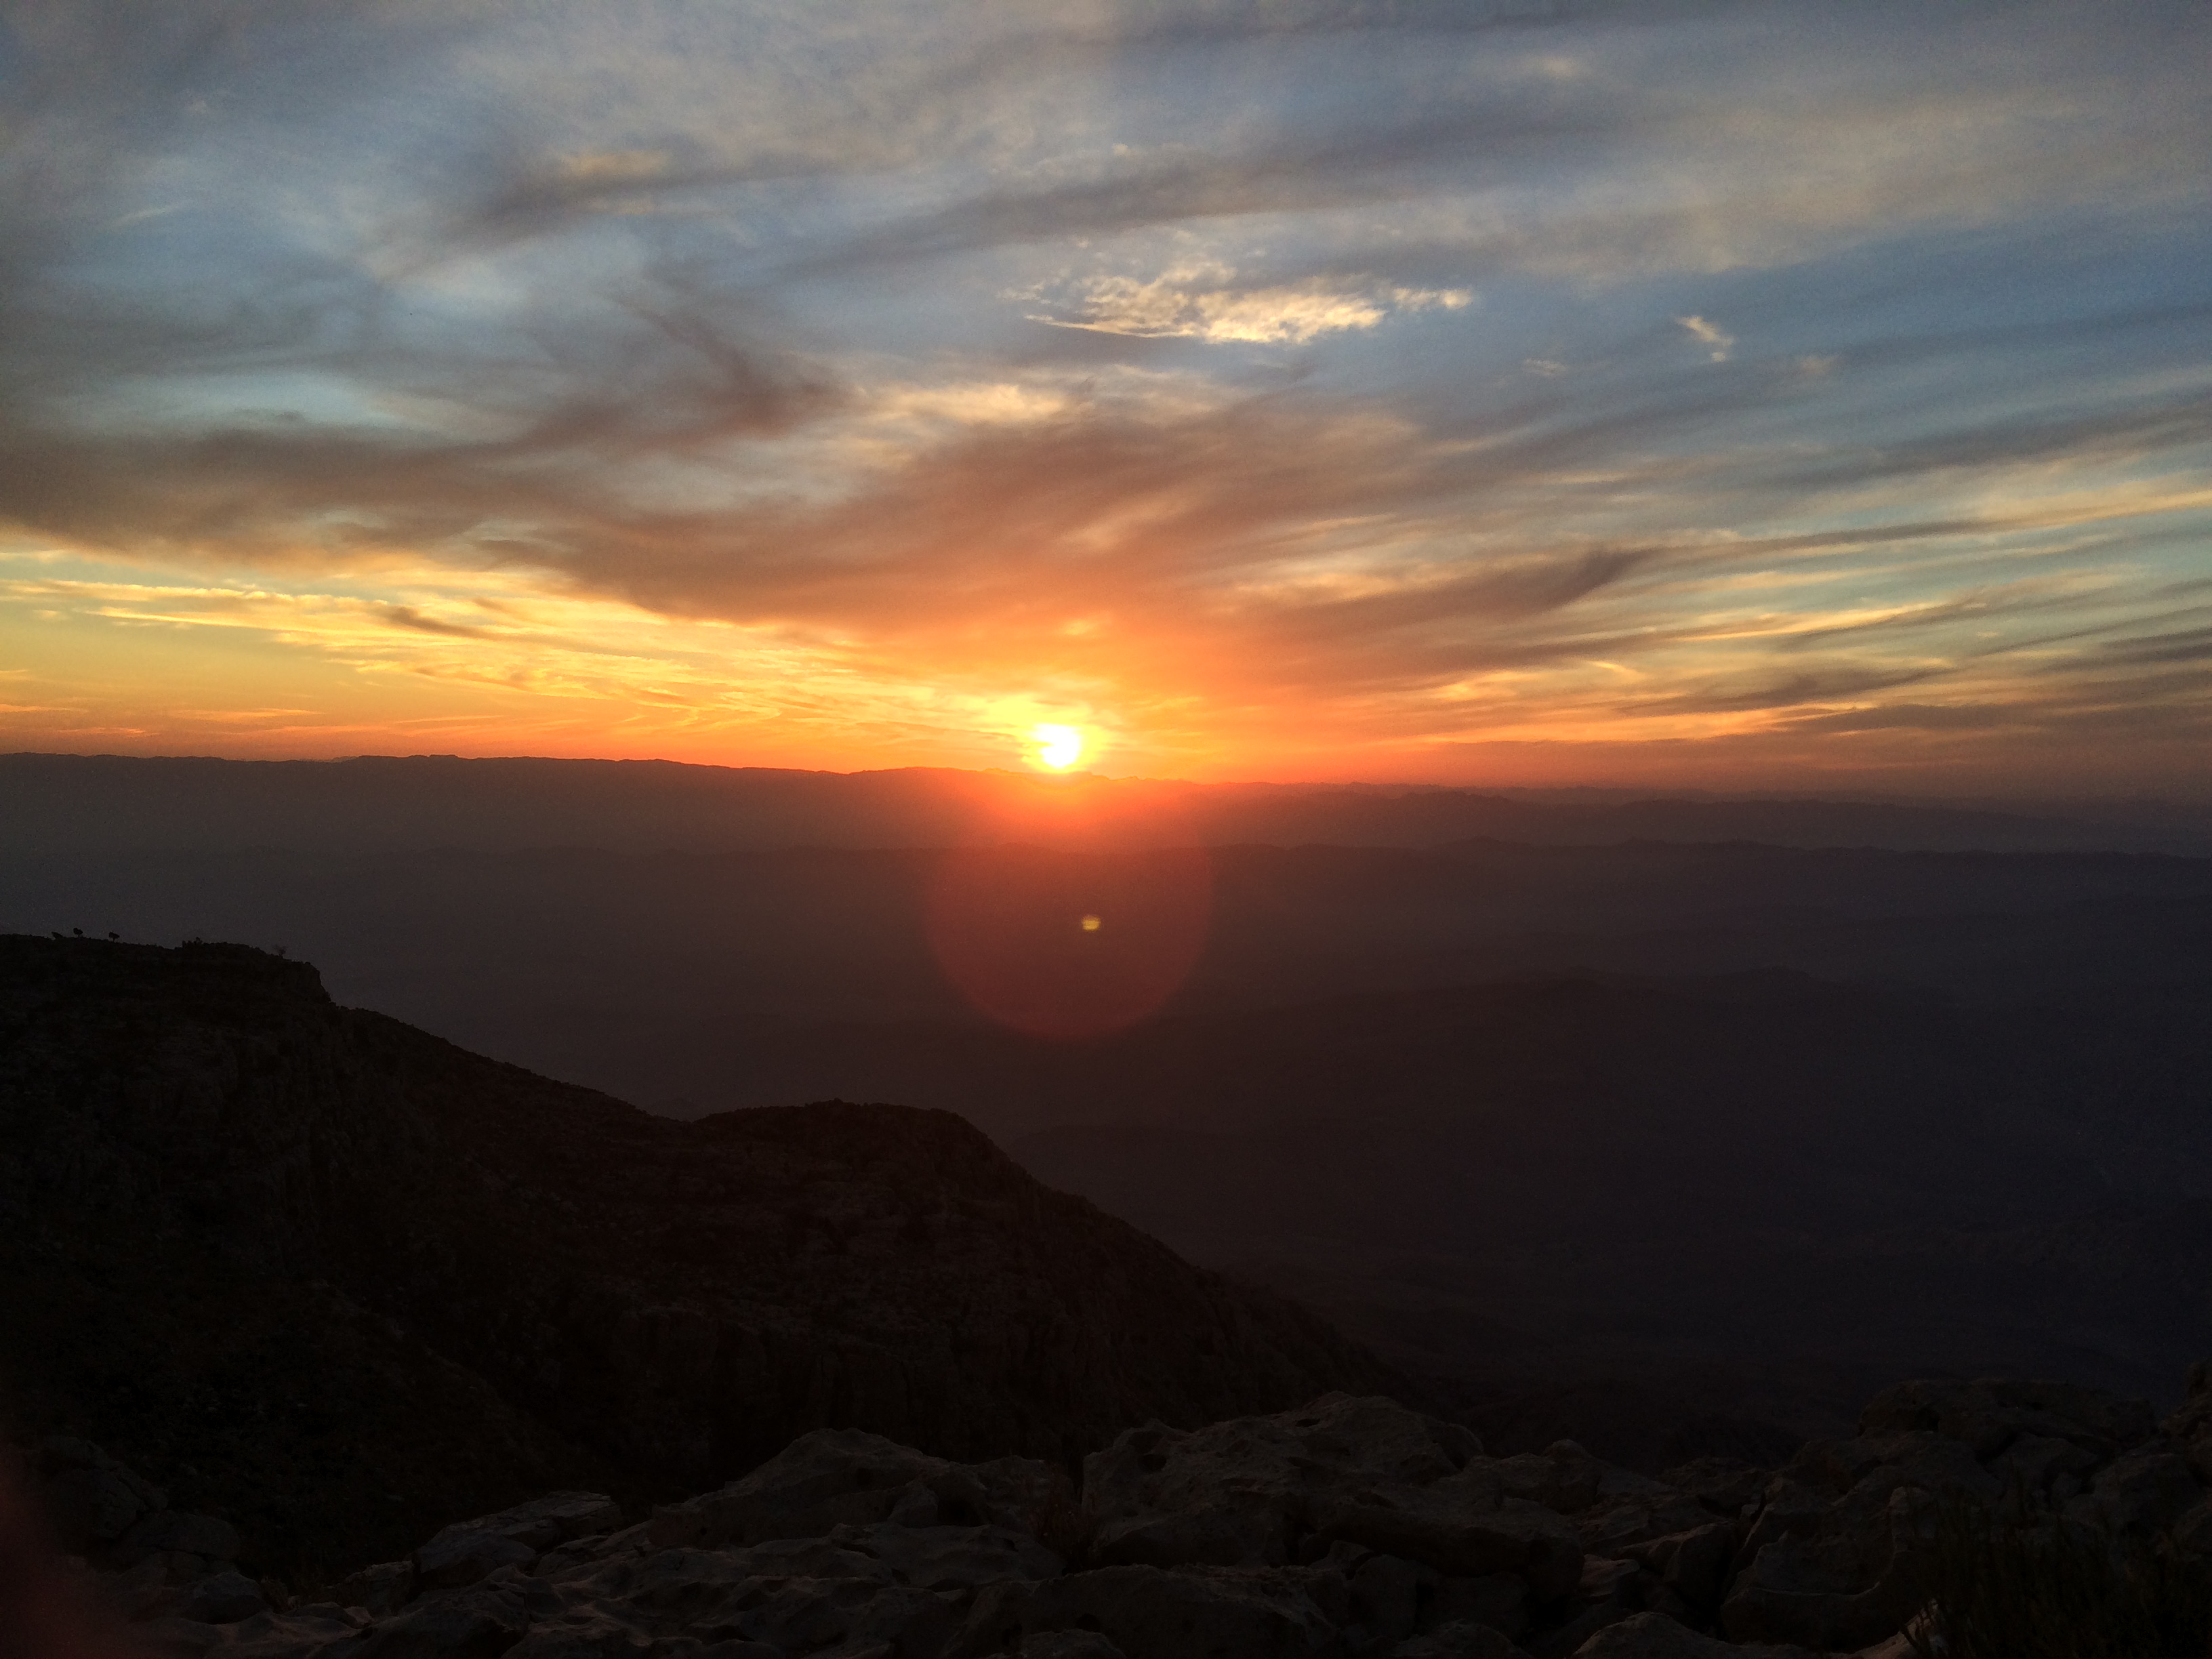 Mesmerizing sunset at Gorakh Hills